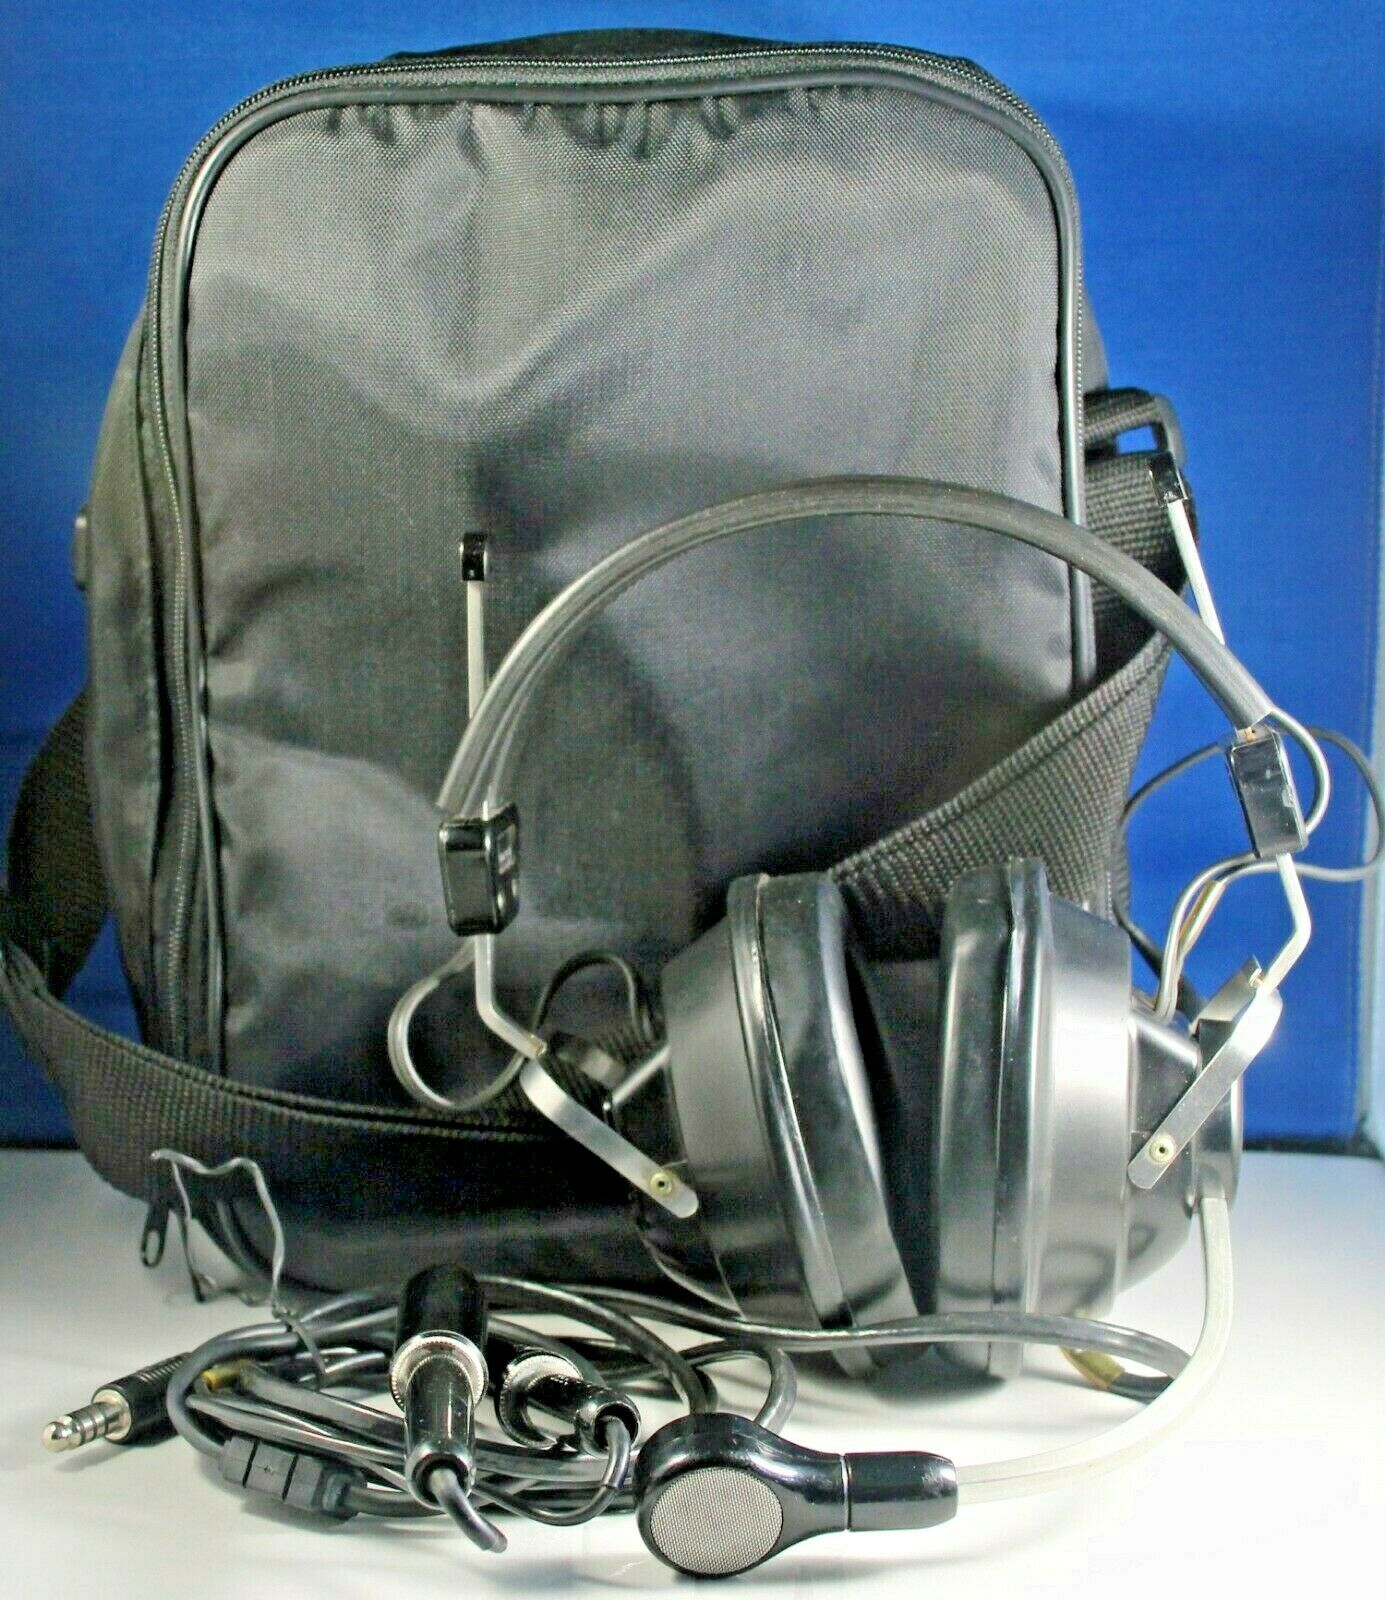 TELEX ARB-1400 General Aviation Pilot Headset with carrying case